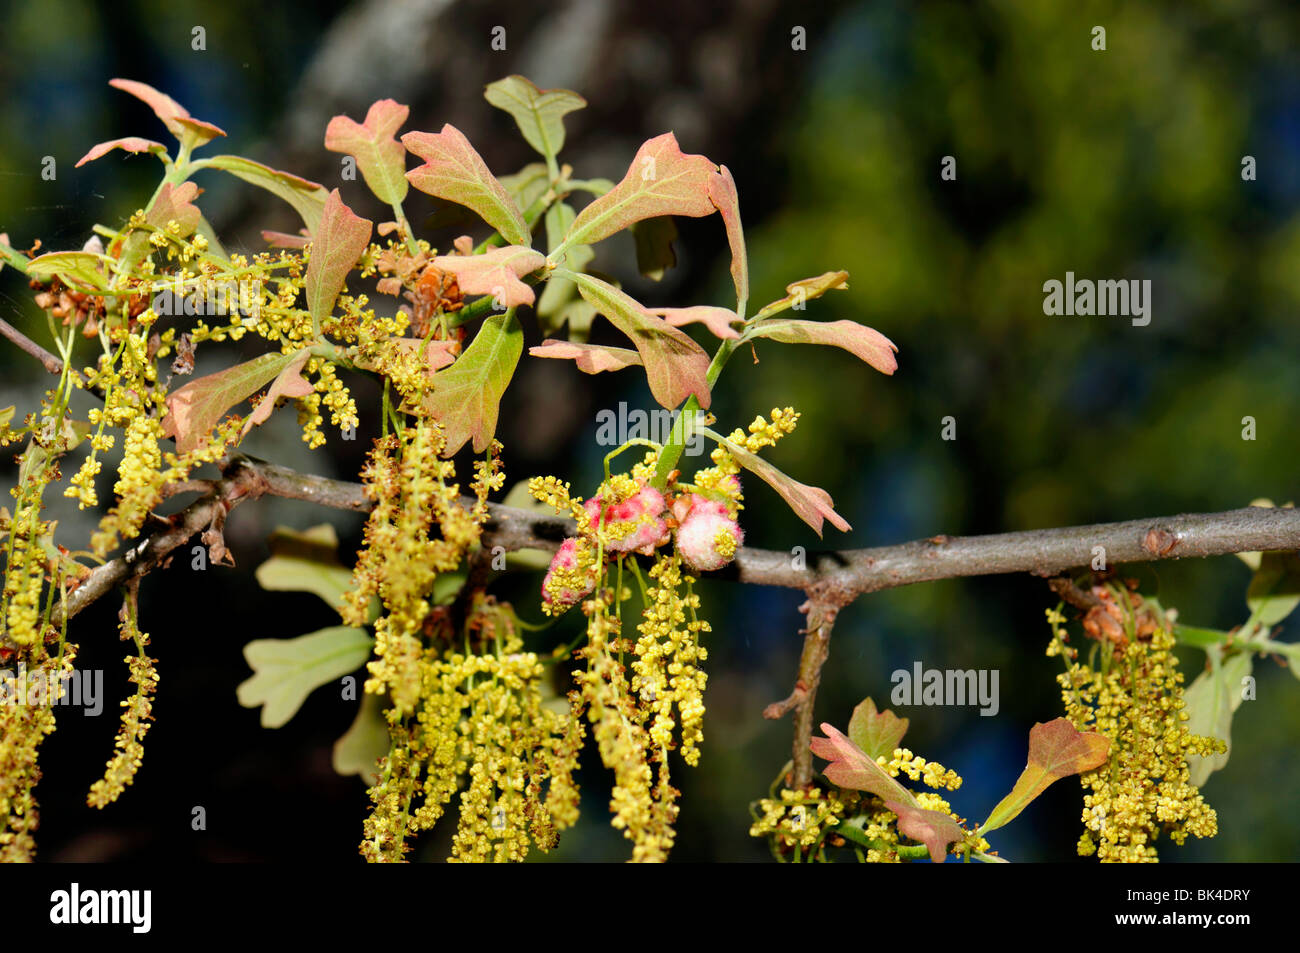 Newly emerged spring Blackjack Oak leaves and catkin. Closeup. Oklahoma, USA. - Stock Image